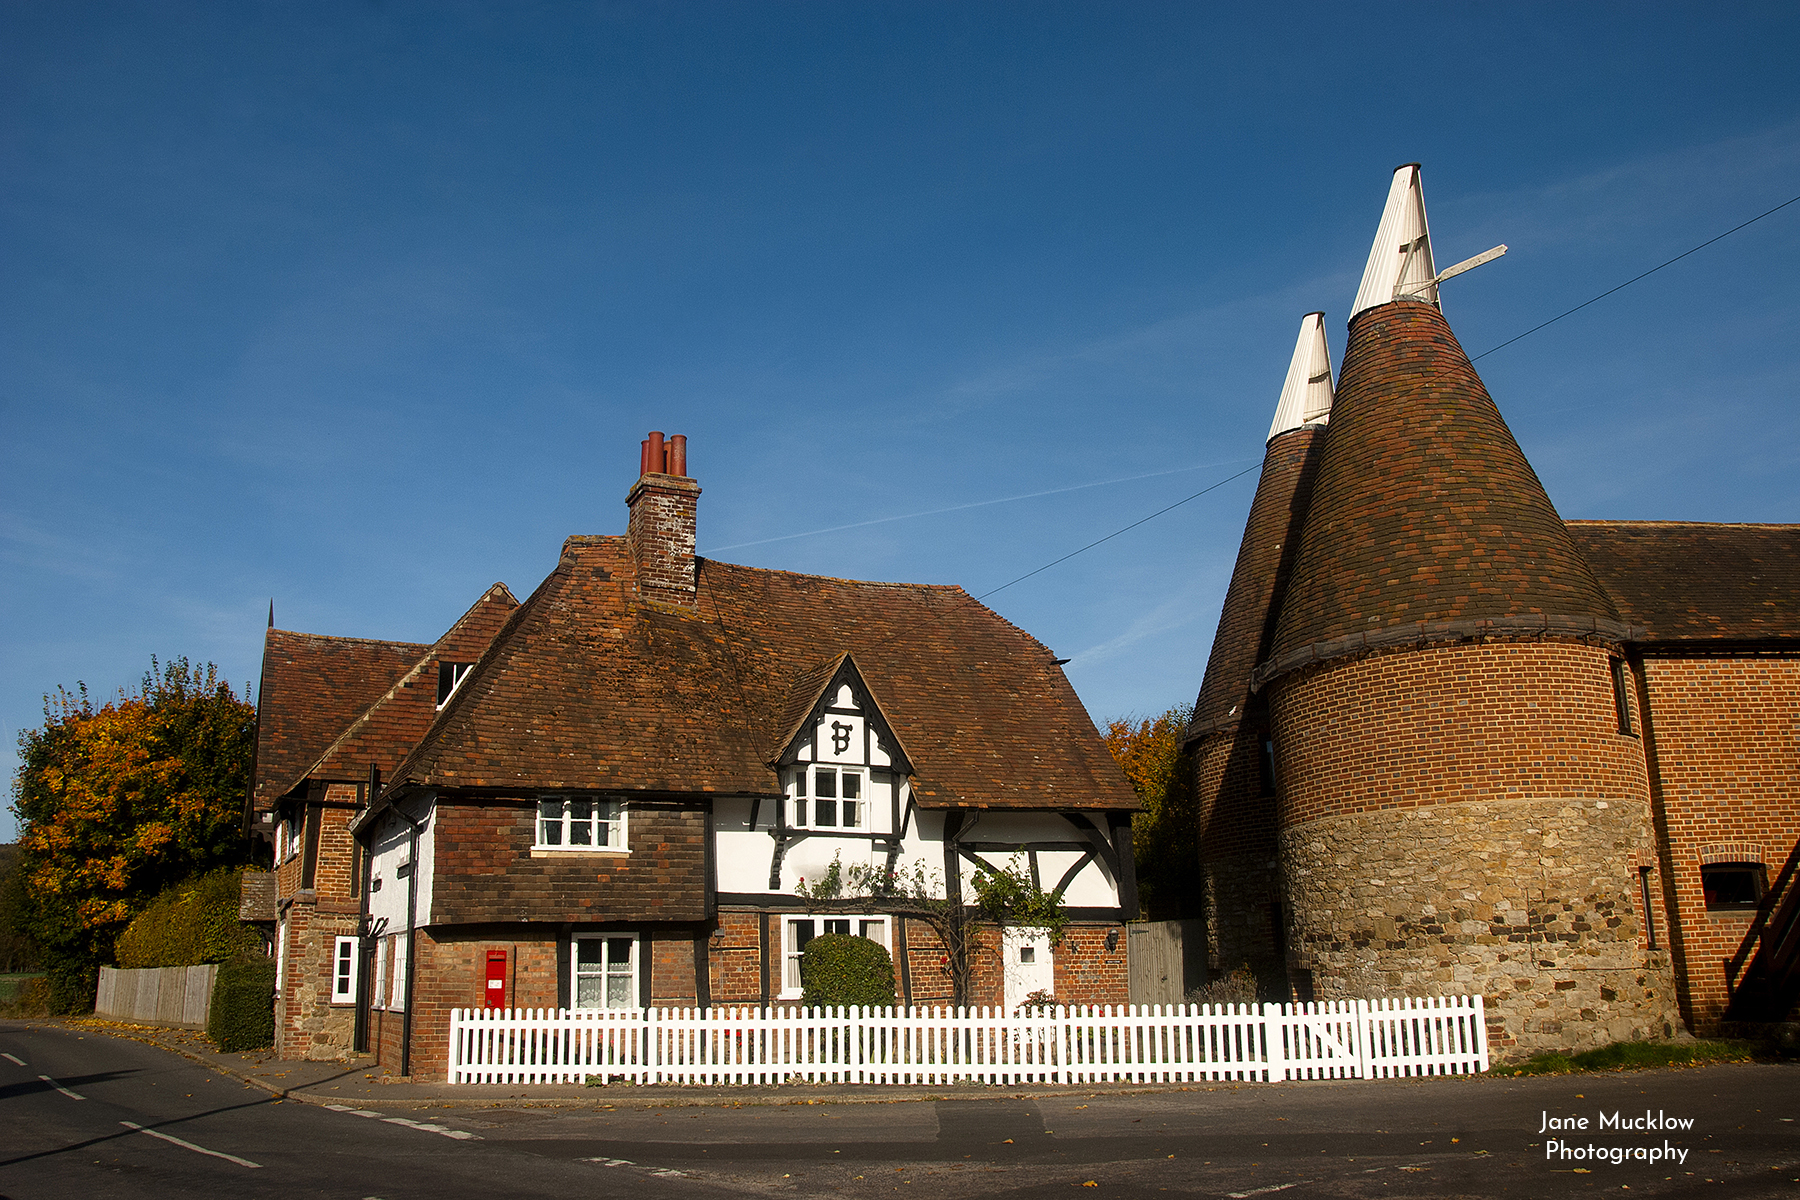 Photo of the oast houses at Heaverham, by Jane Mucklow